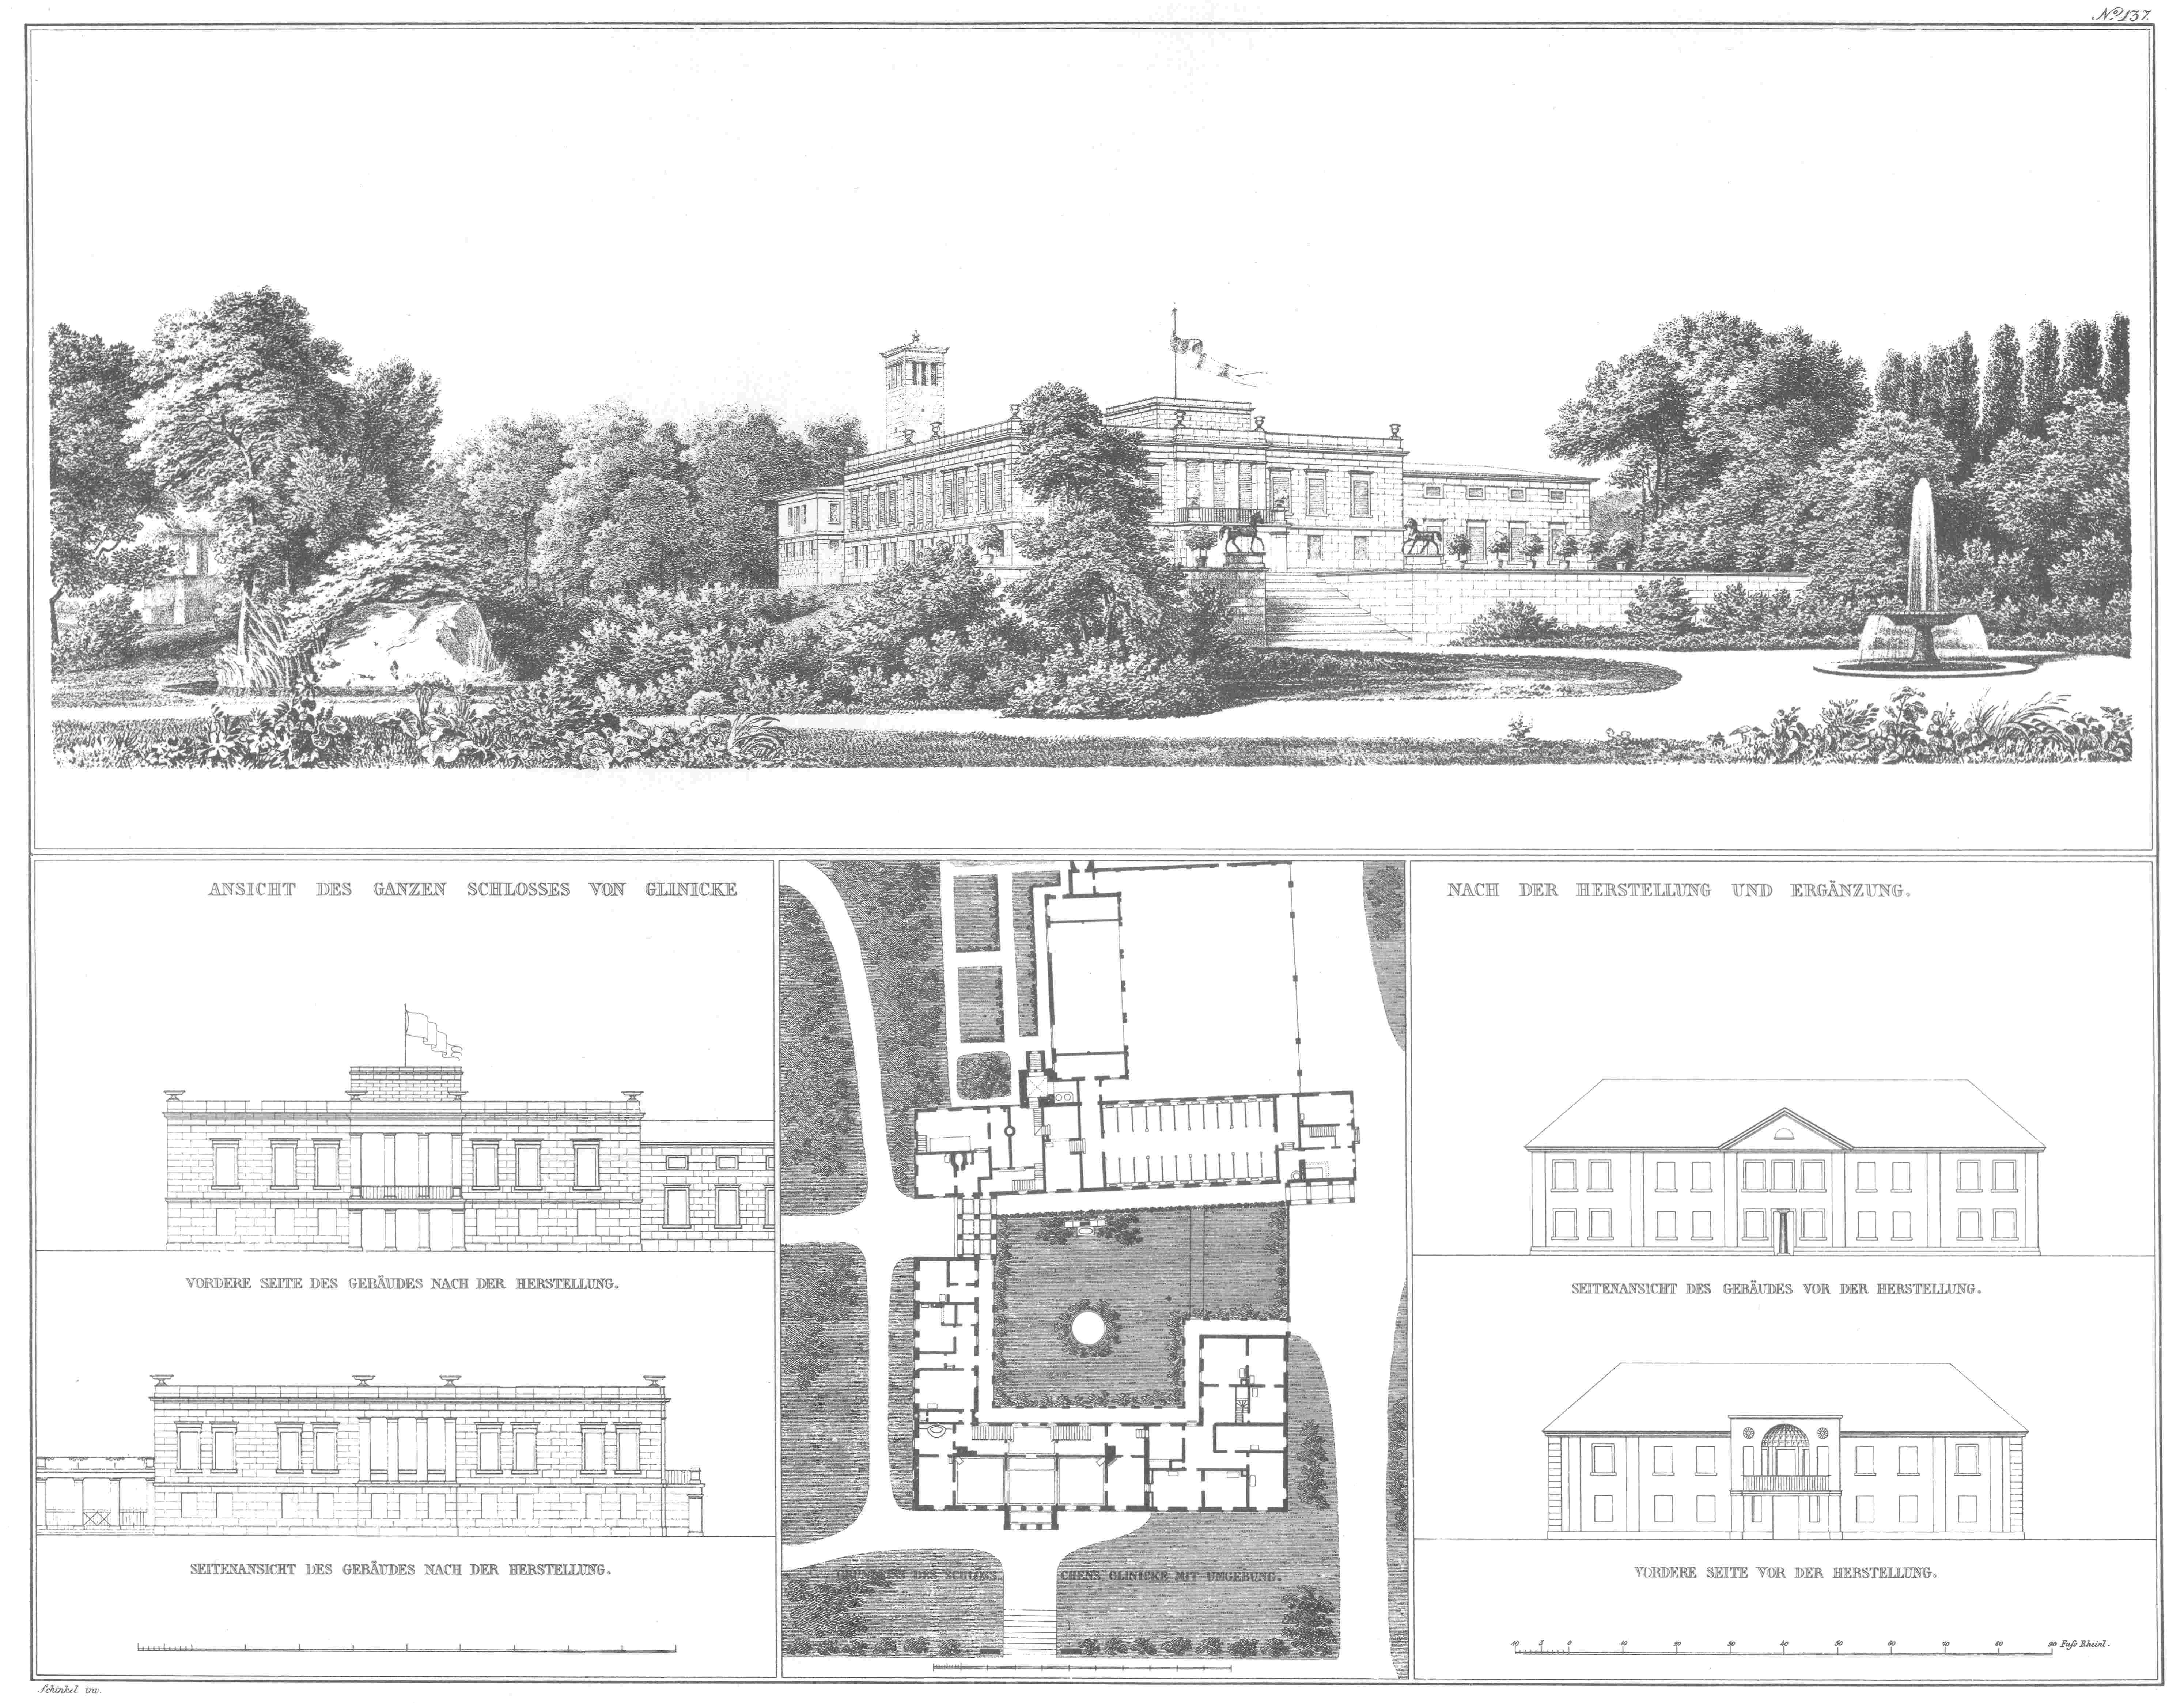 Schinkel Schloss Glienicke Potsdam 1824 32 Engraving Of Perspective Elevation Lower Left Floor Sit Architecture Sketch Site Plan Classical Architecture